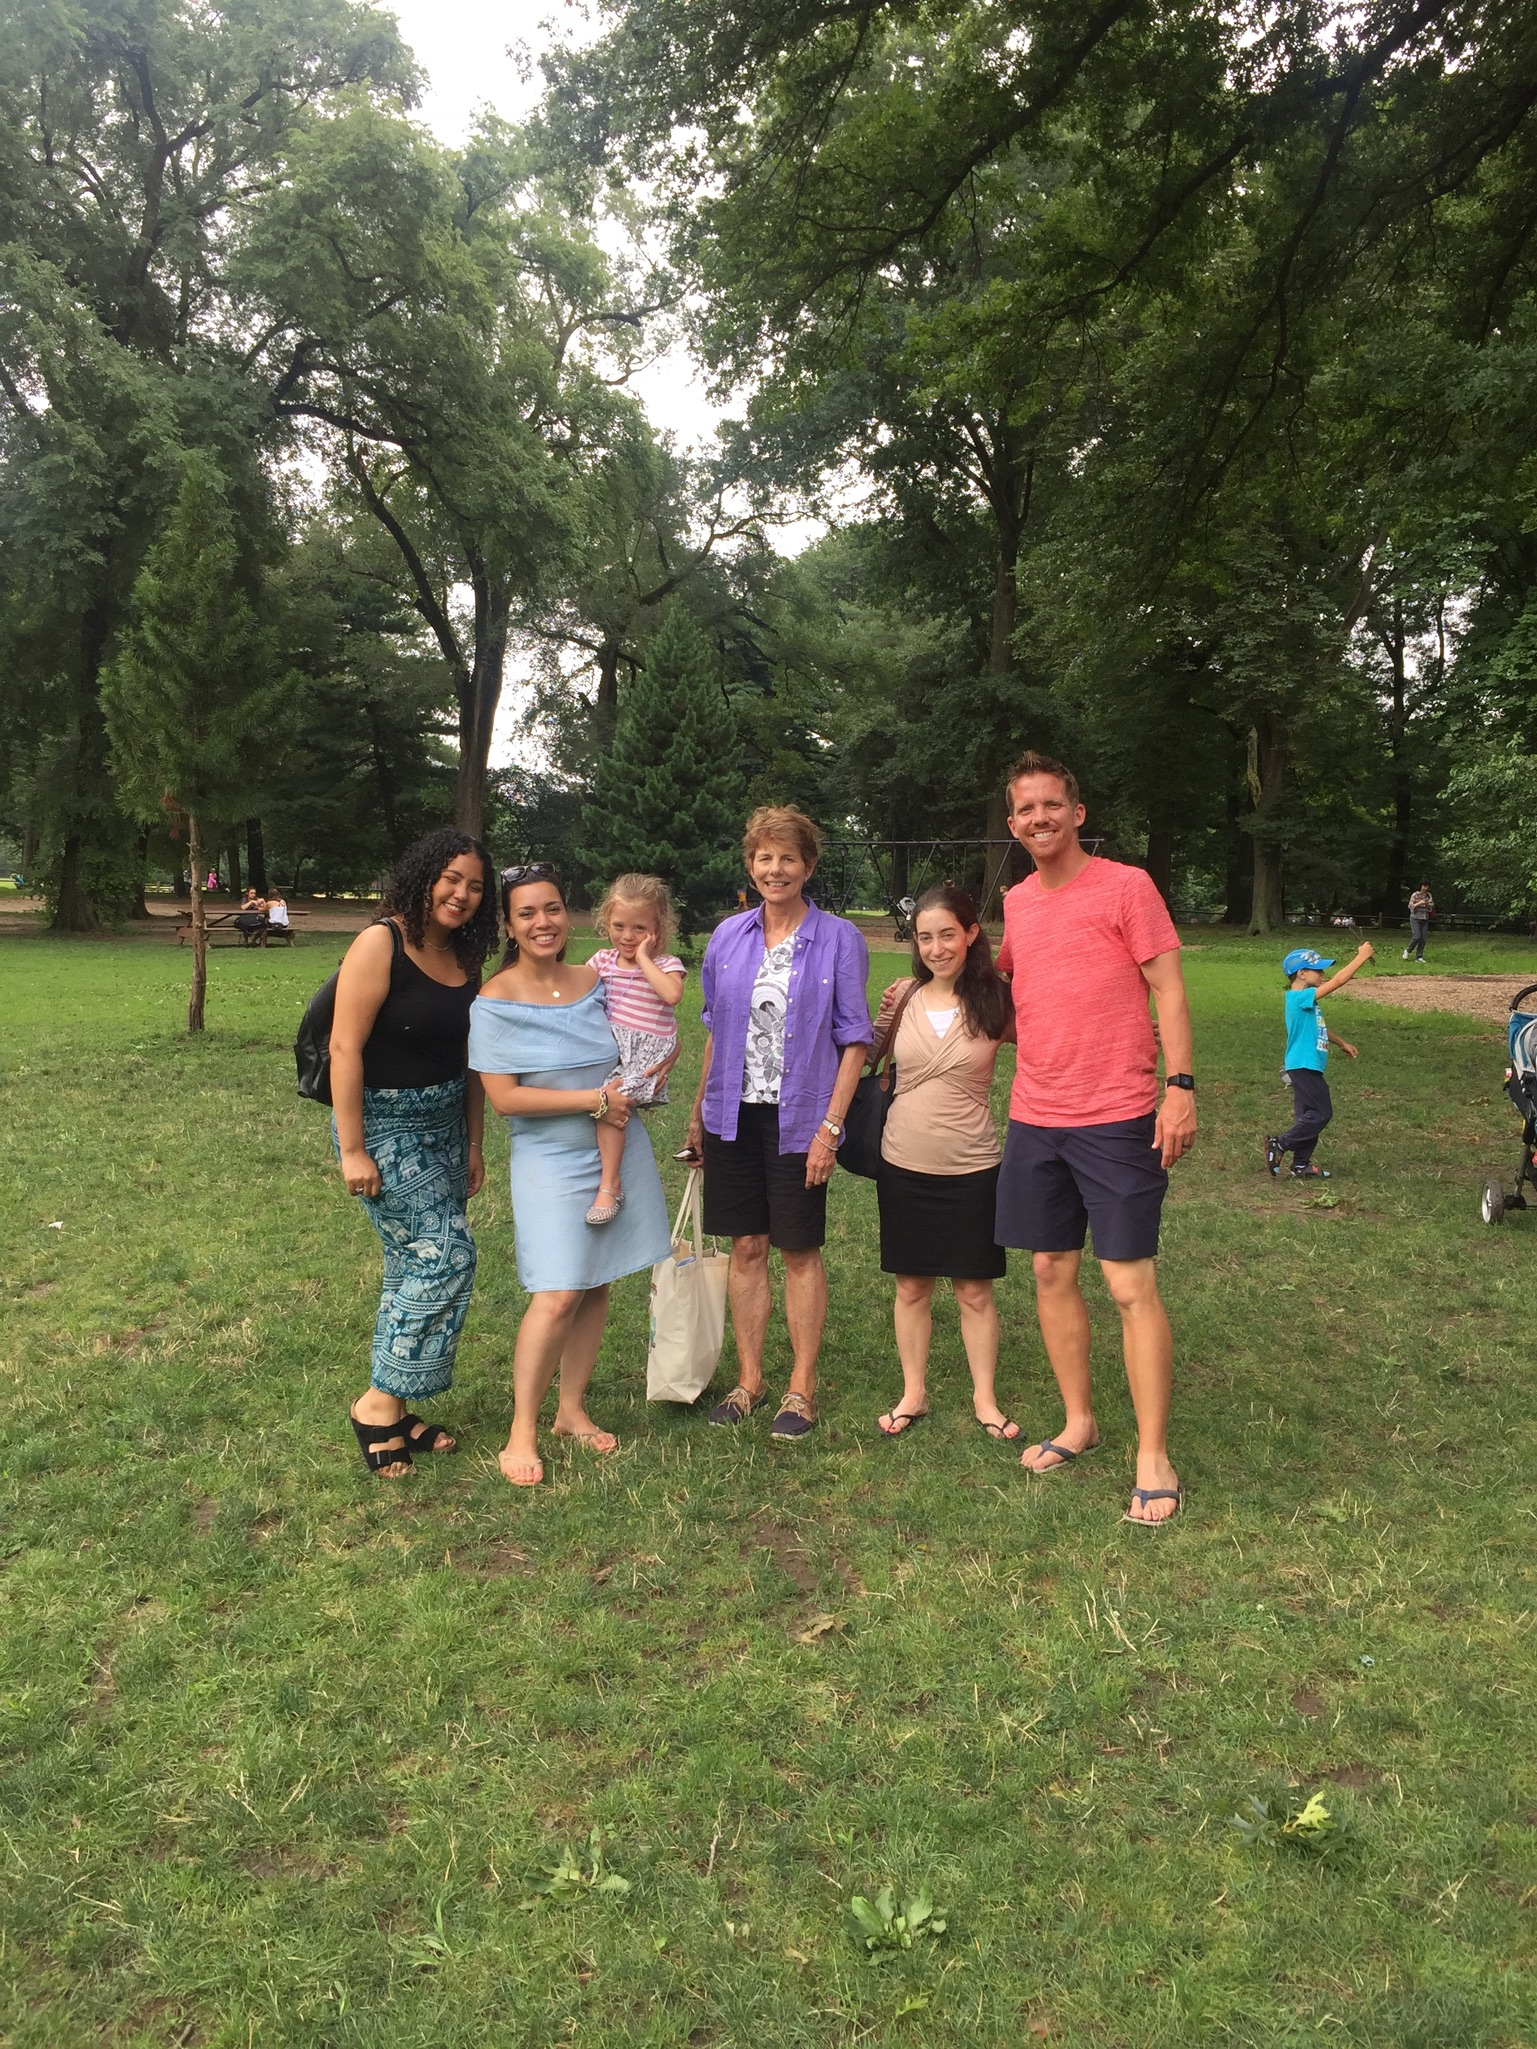 The following weekend, we had a picnic in Central Park with most of Lucie's original Early Intervention Therapy team. It was so great to catch up with them after a year!